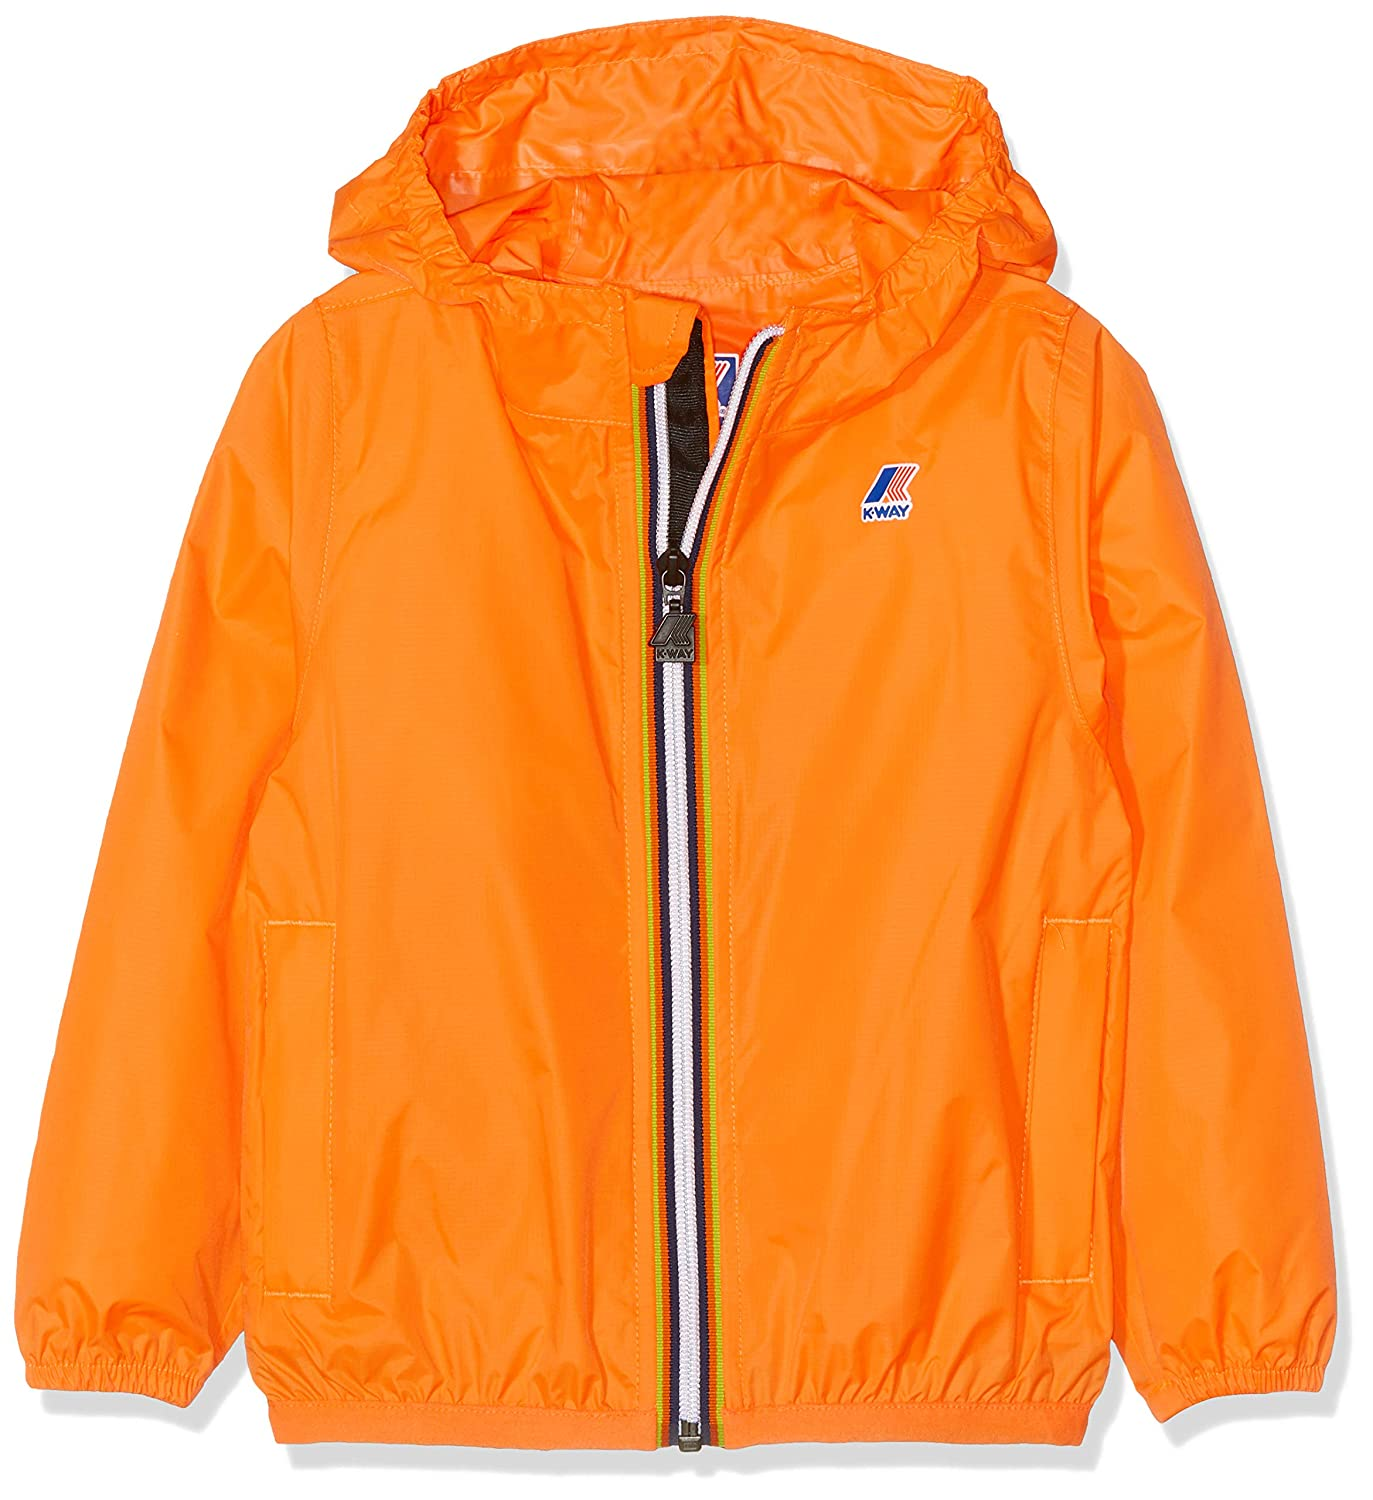 Arancione (Orange Extrafluo Z05) 128 K.Way Jungen Claude Regenjacke